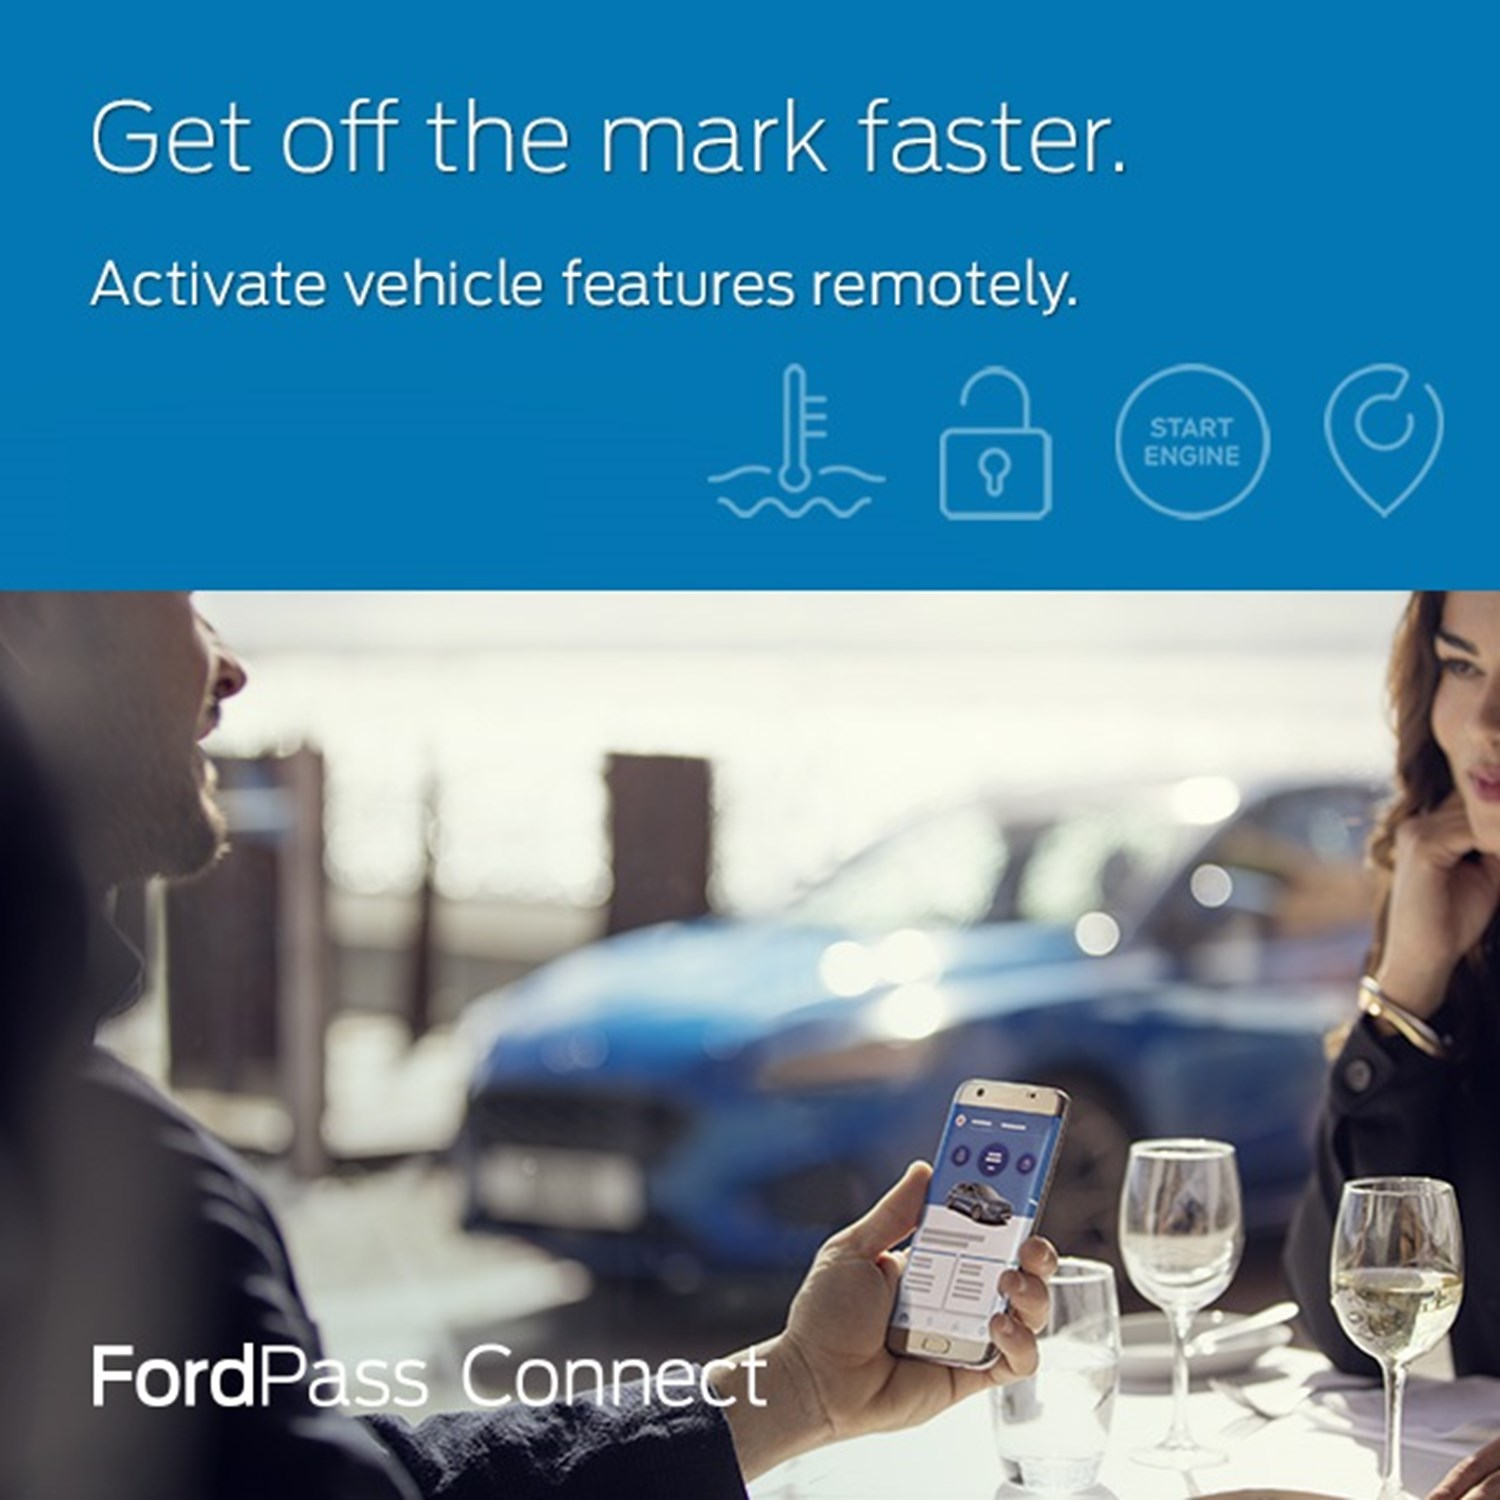 FordPass App Remote Features